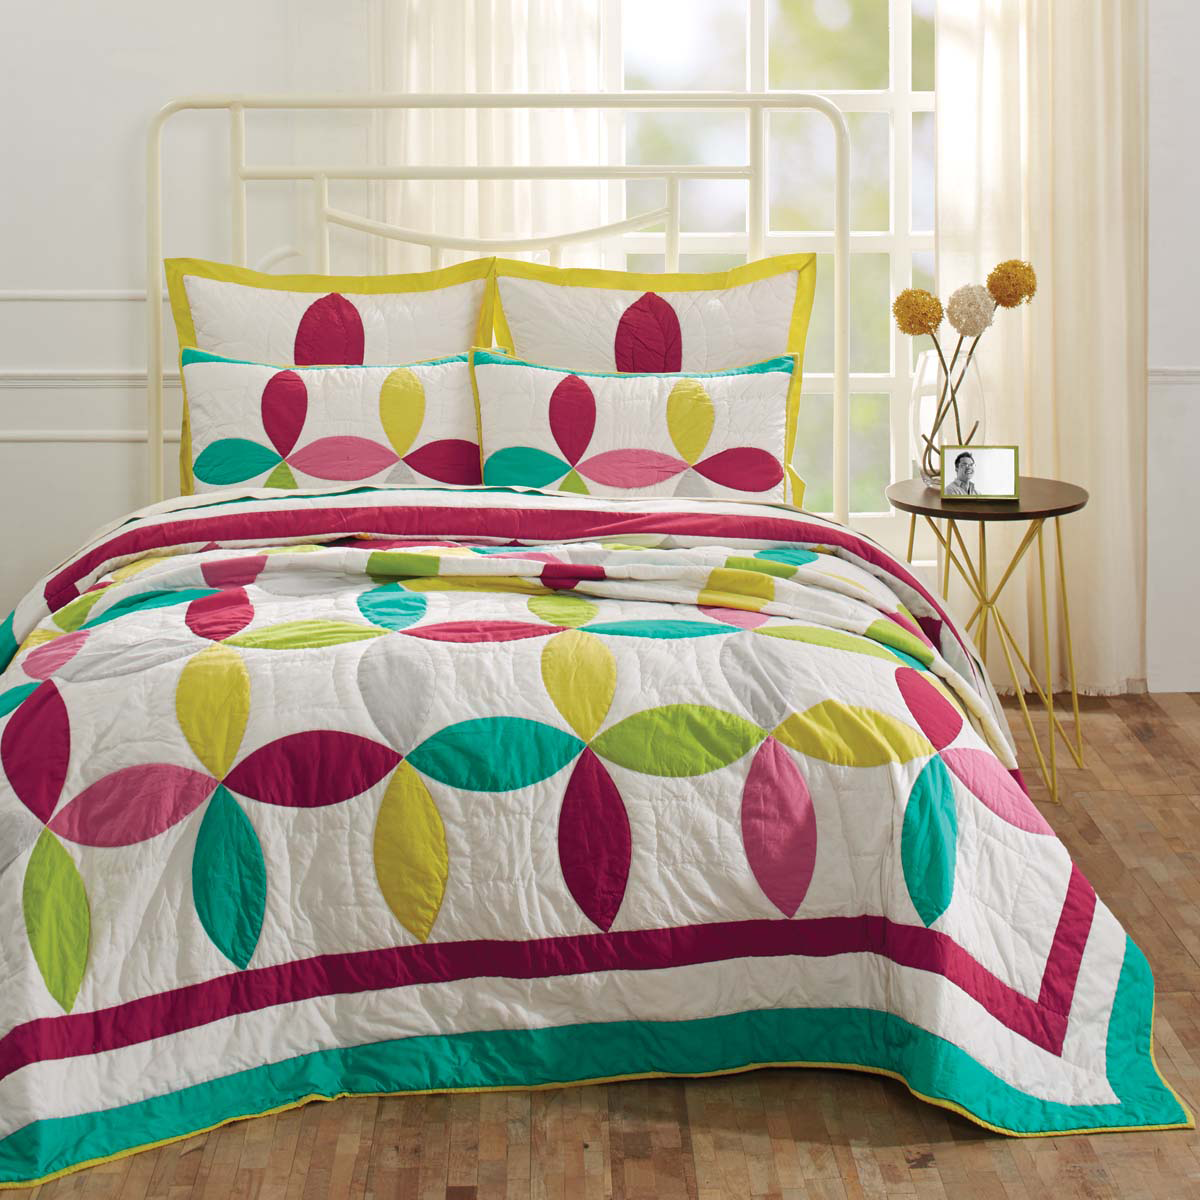 5-pc King - EVERLY Quilt Shams Euro Set - Bright Colors on White - VHC Brands